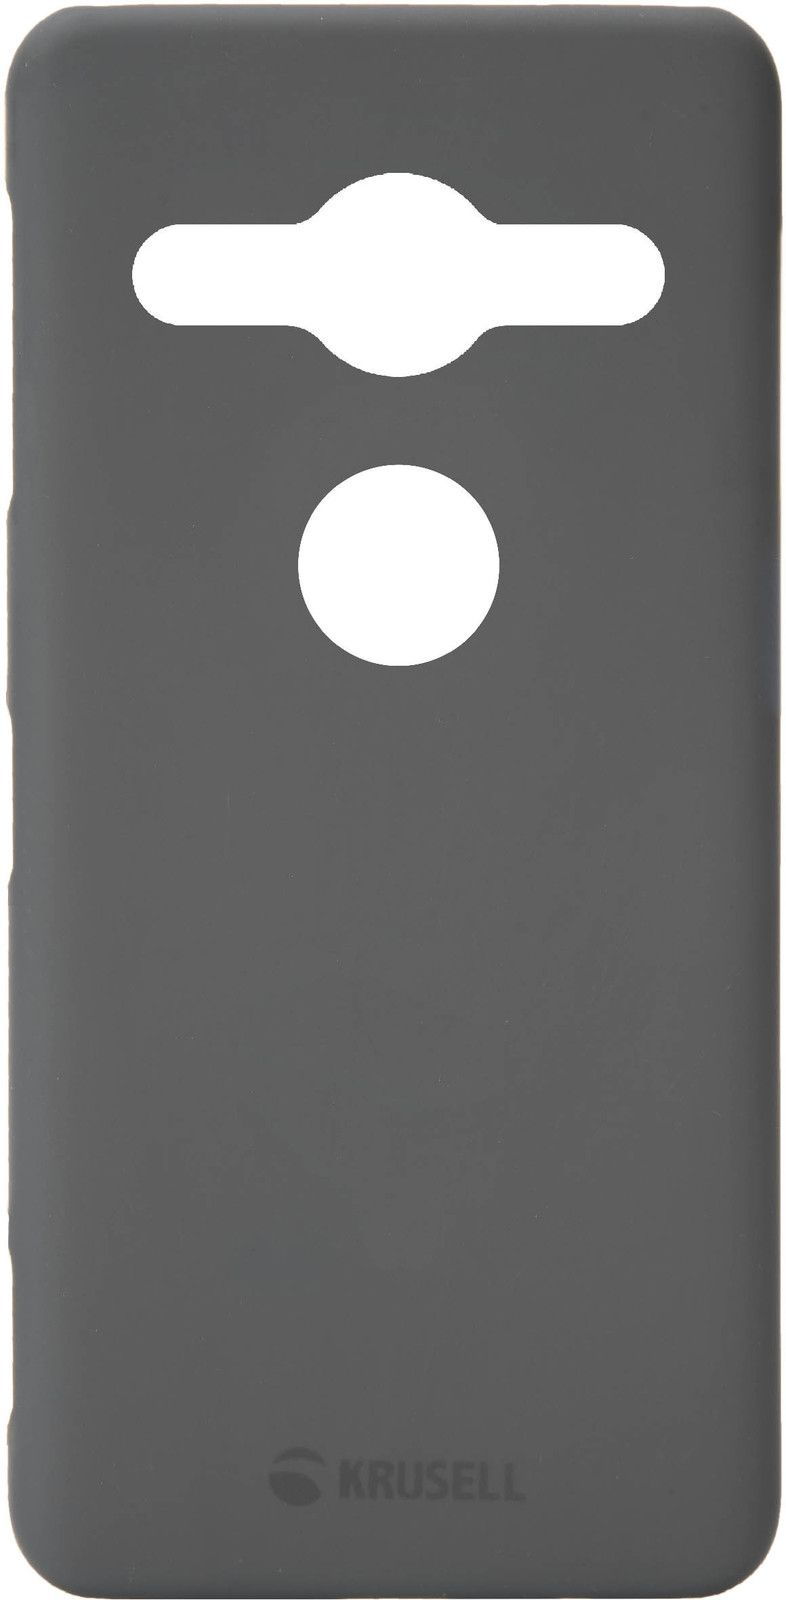 KRUSELL Nora Cover (61345-X)